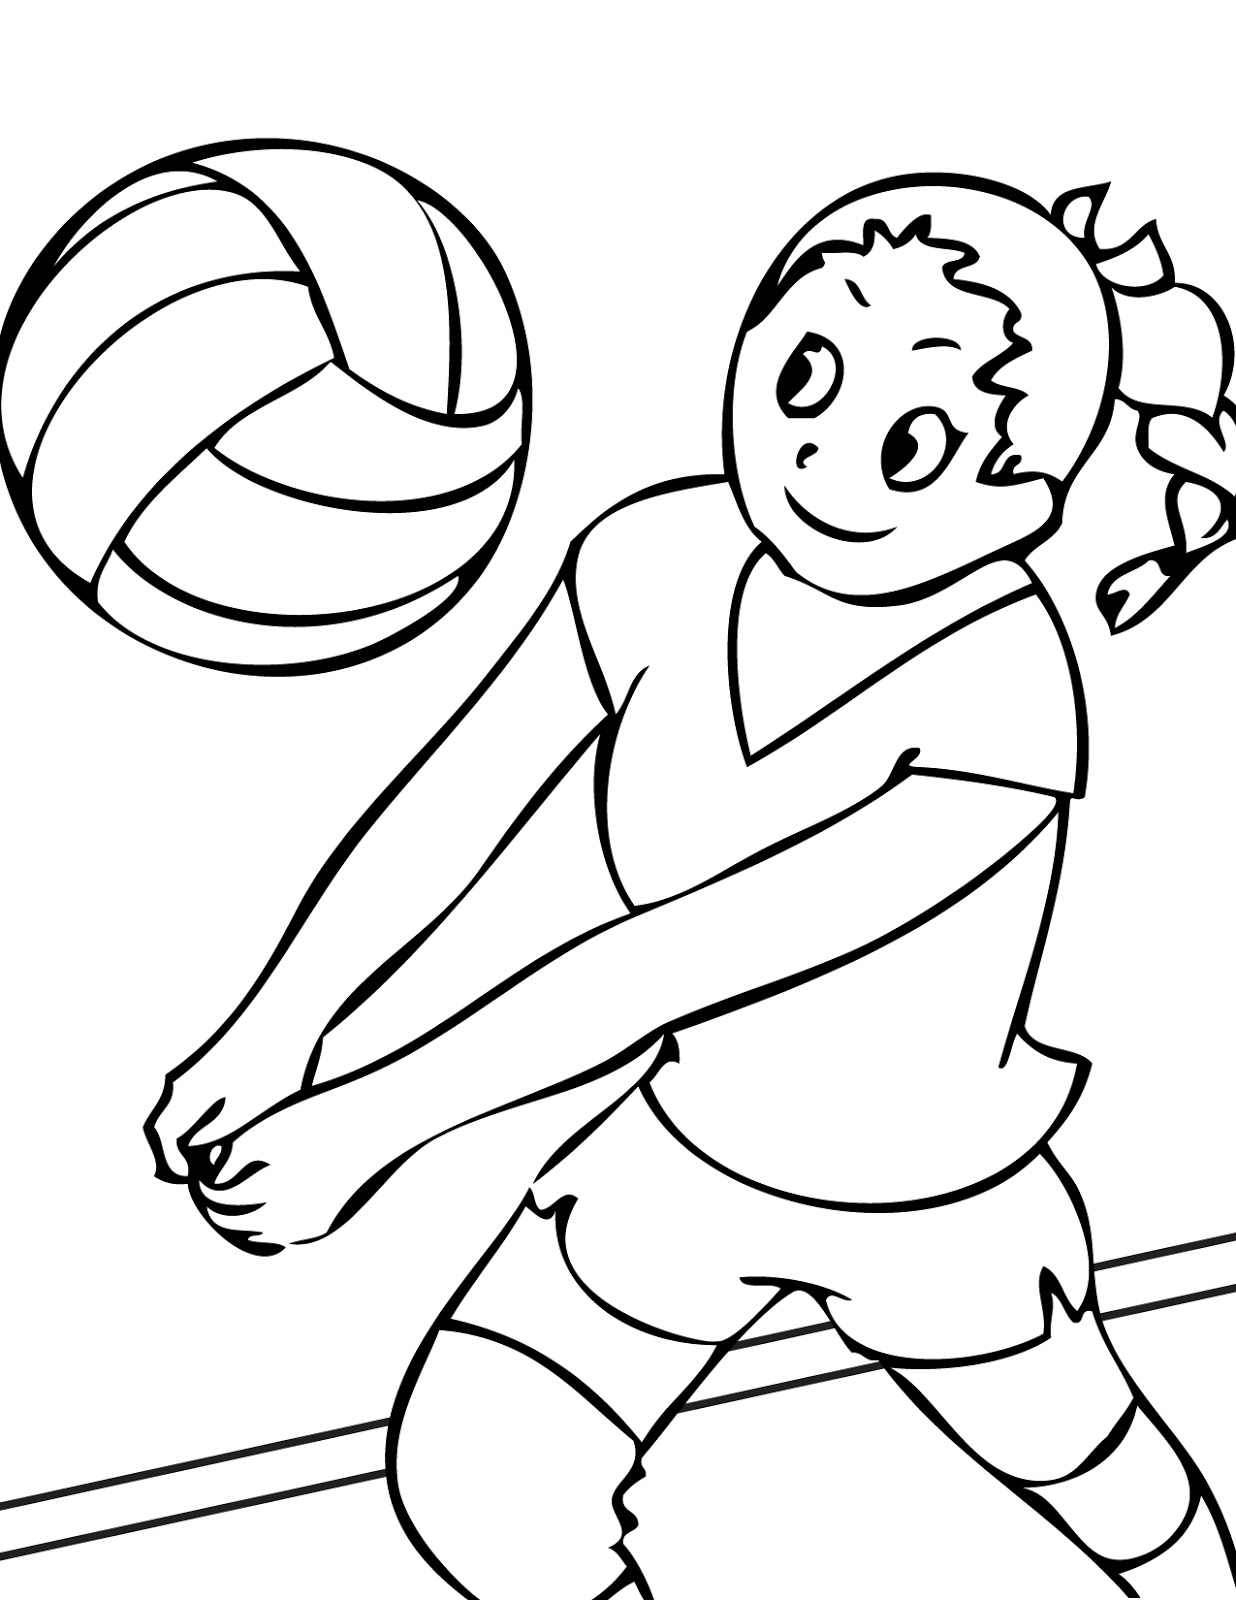 gallup coloring pages - photo#39